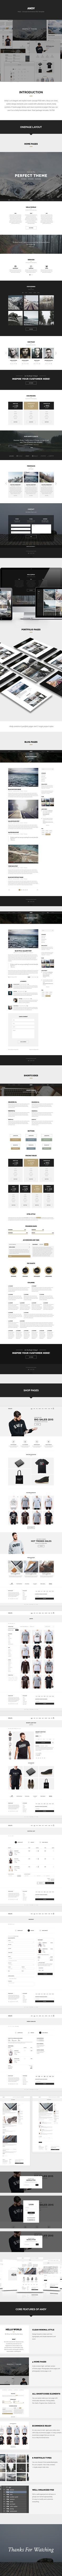 Andy – Multi-concept E-commerce PSD pack on Behance